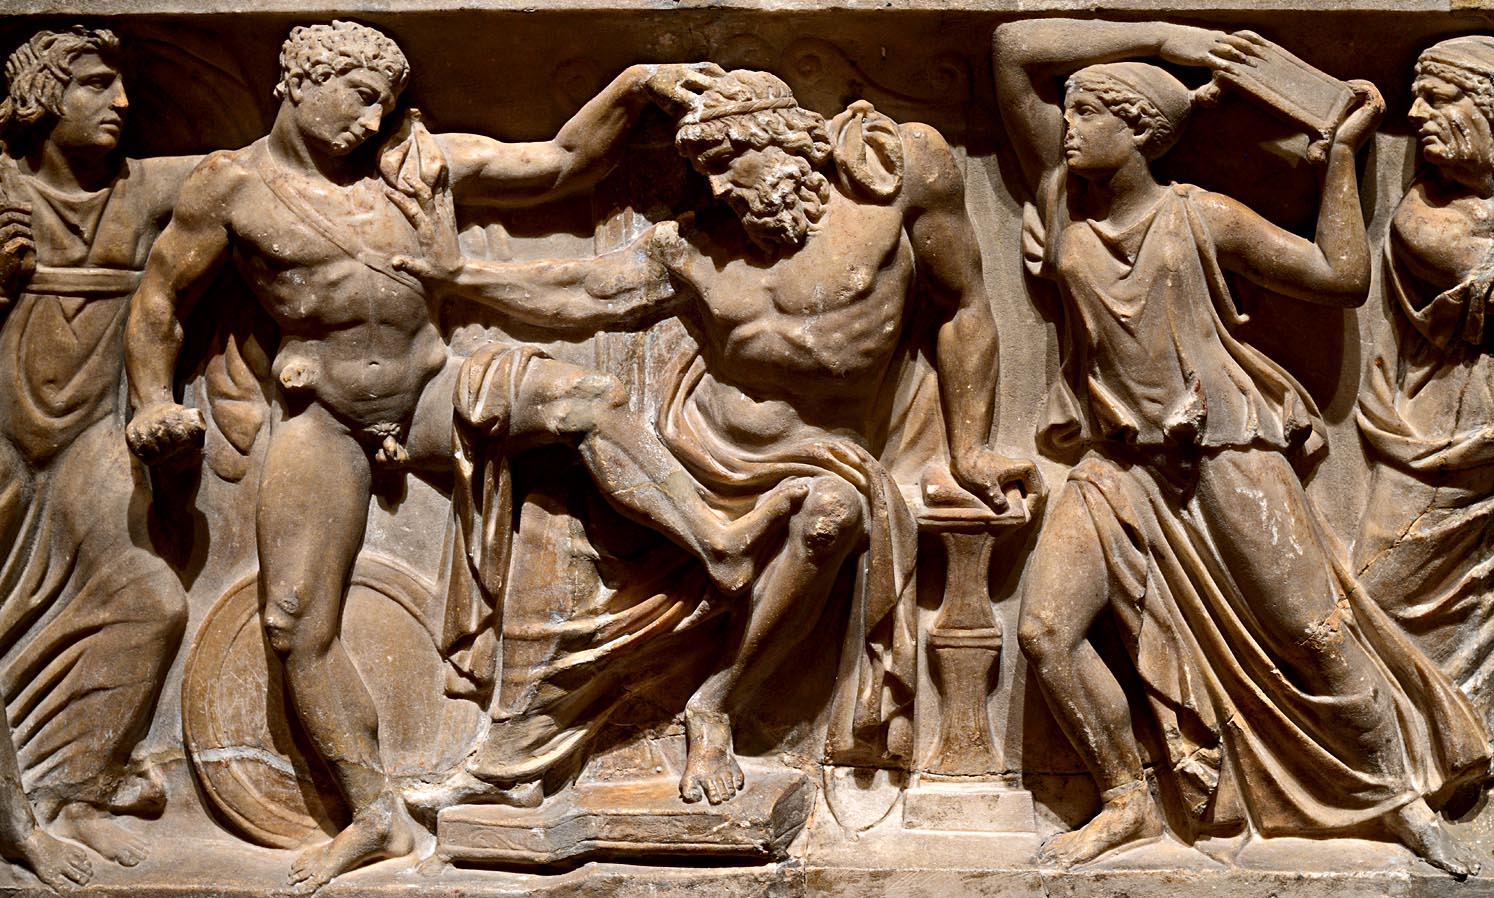 """Orestes slaying Aegisthus (a close-up of relief """"Orestes slaying Aegisthus and Clytemnestra""""). Frontal relief of a sarcophagus. Rome. Marble. Ca. 150 CE. Inv. No. A 461. Saint Petersburg, The State Hermitage Museum"""